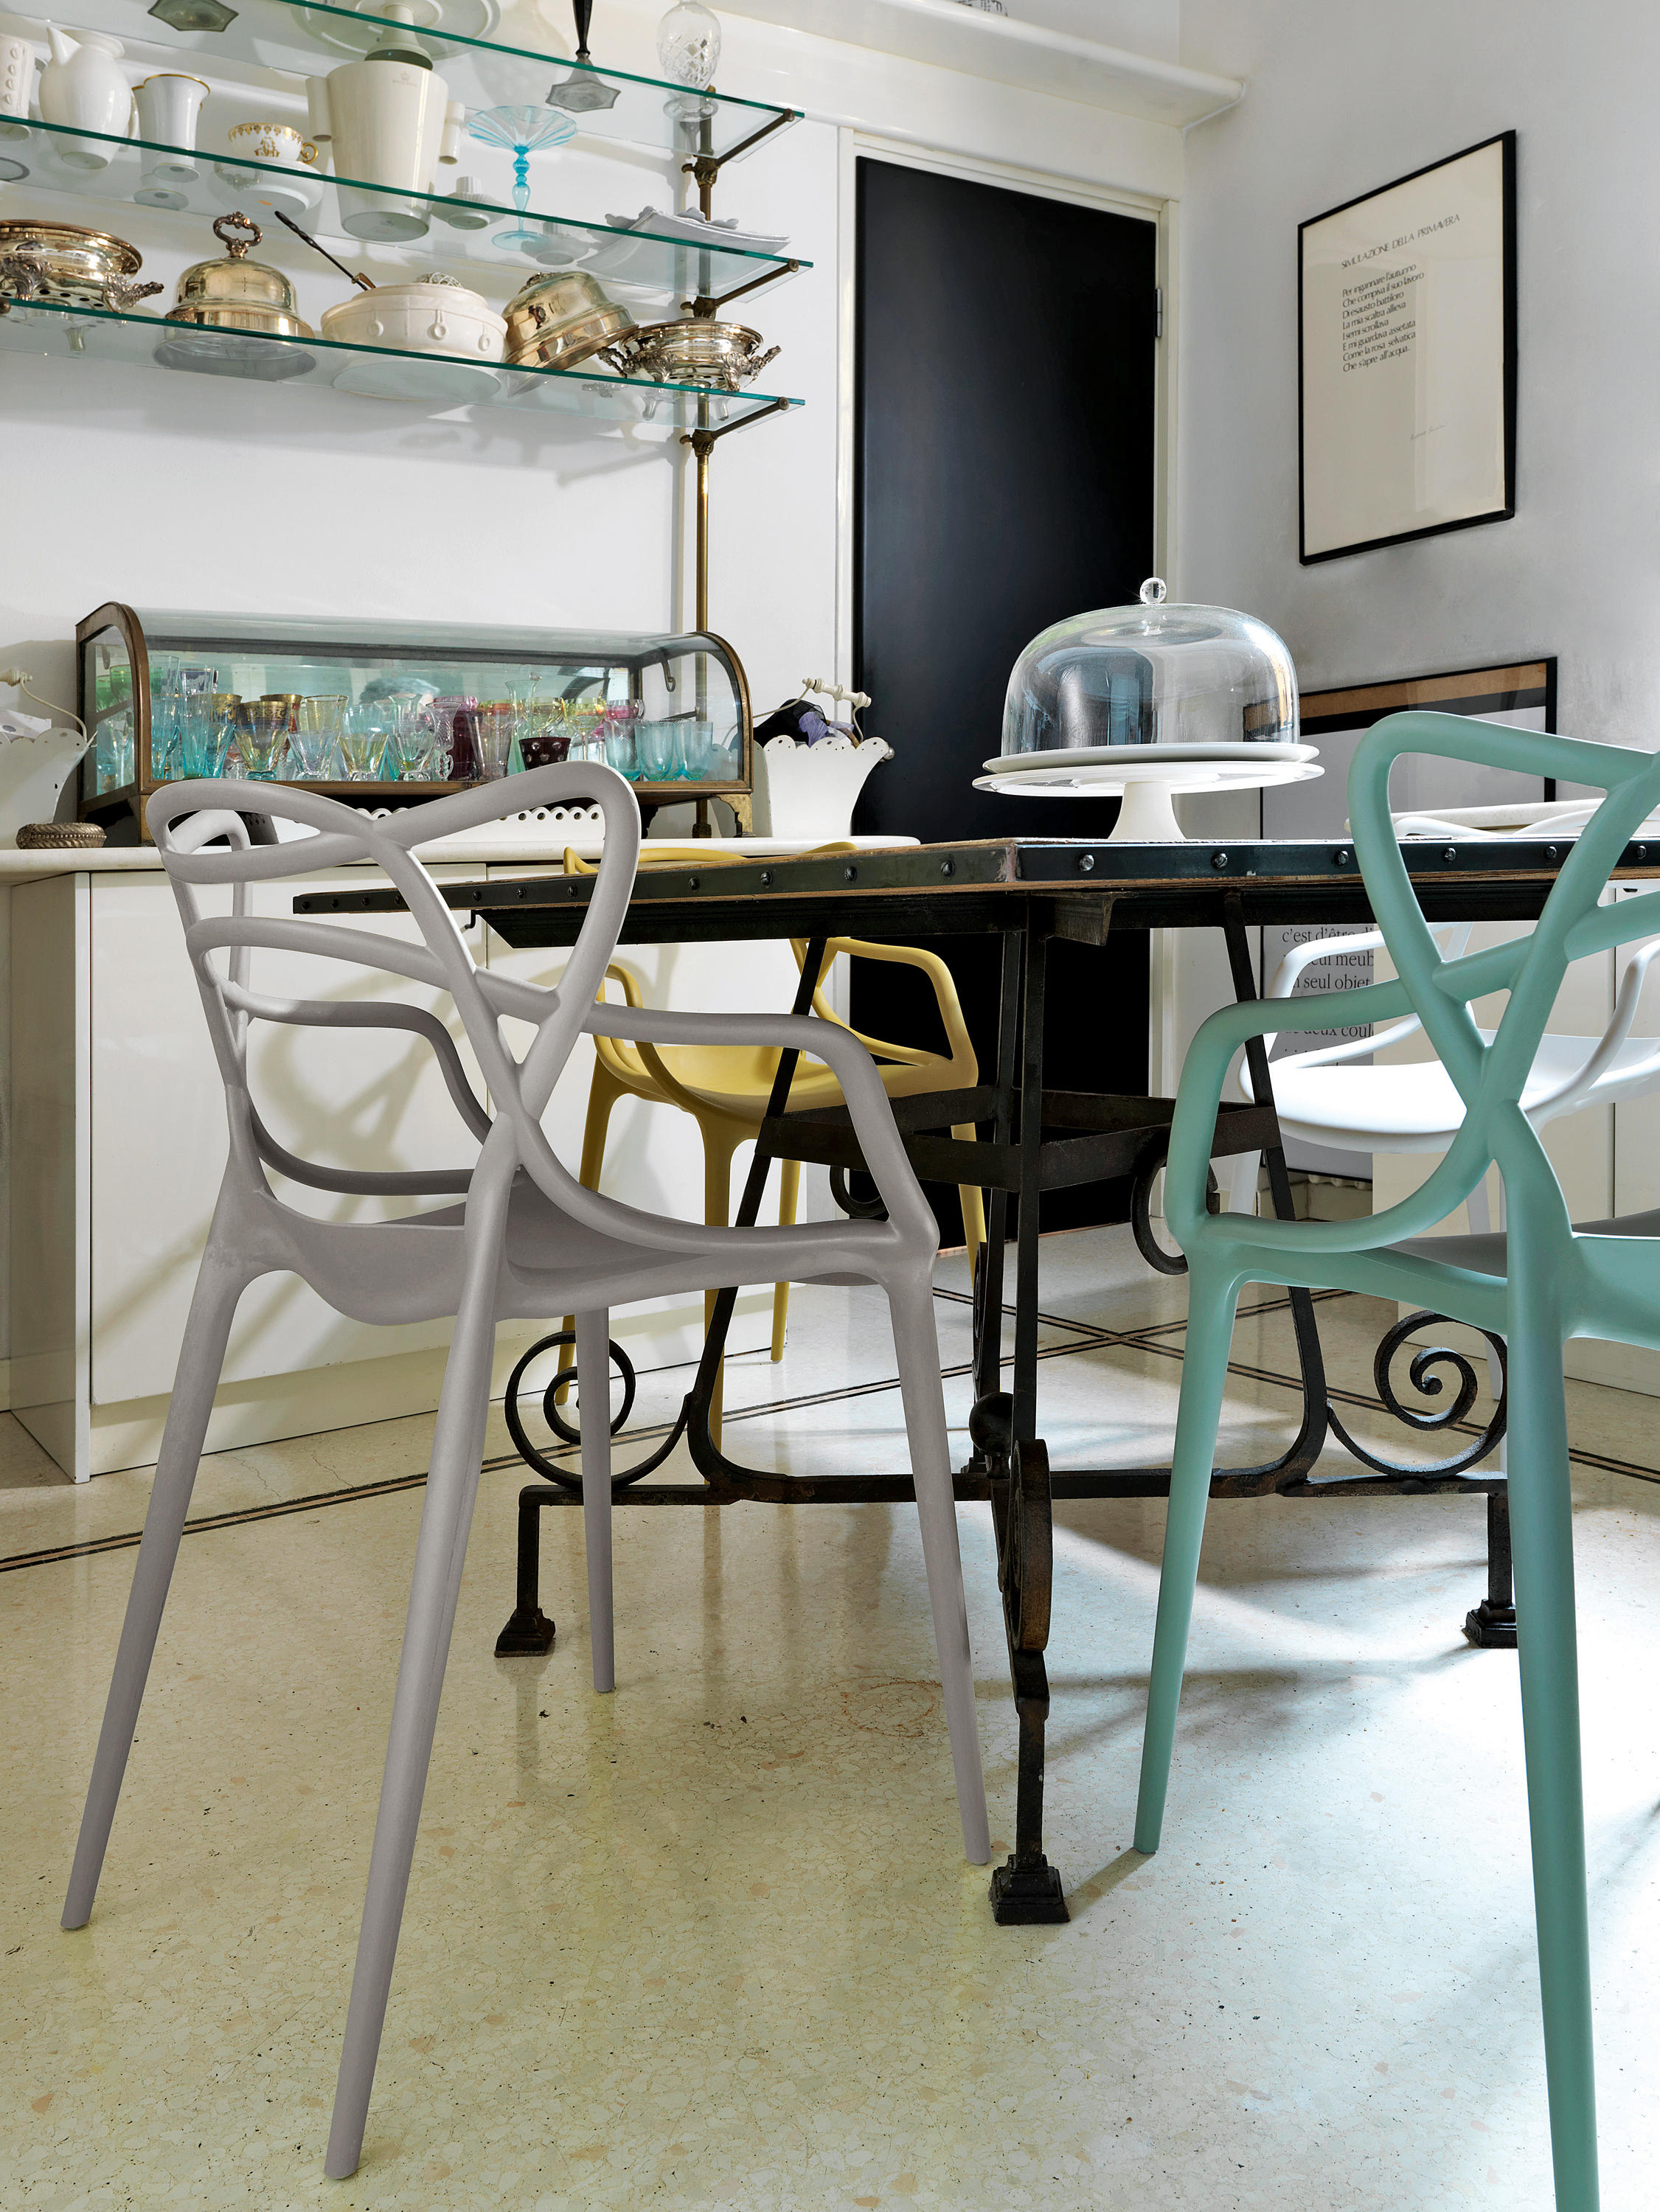 design chair kartell pottery barn hang around cover masters chairs from architonic by